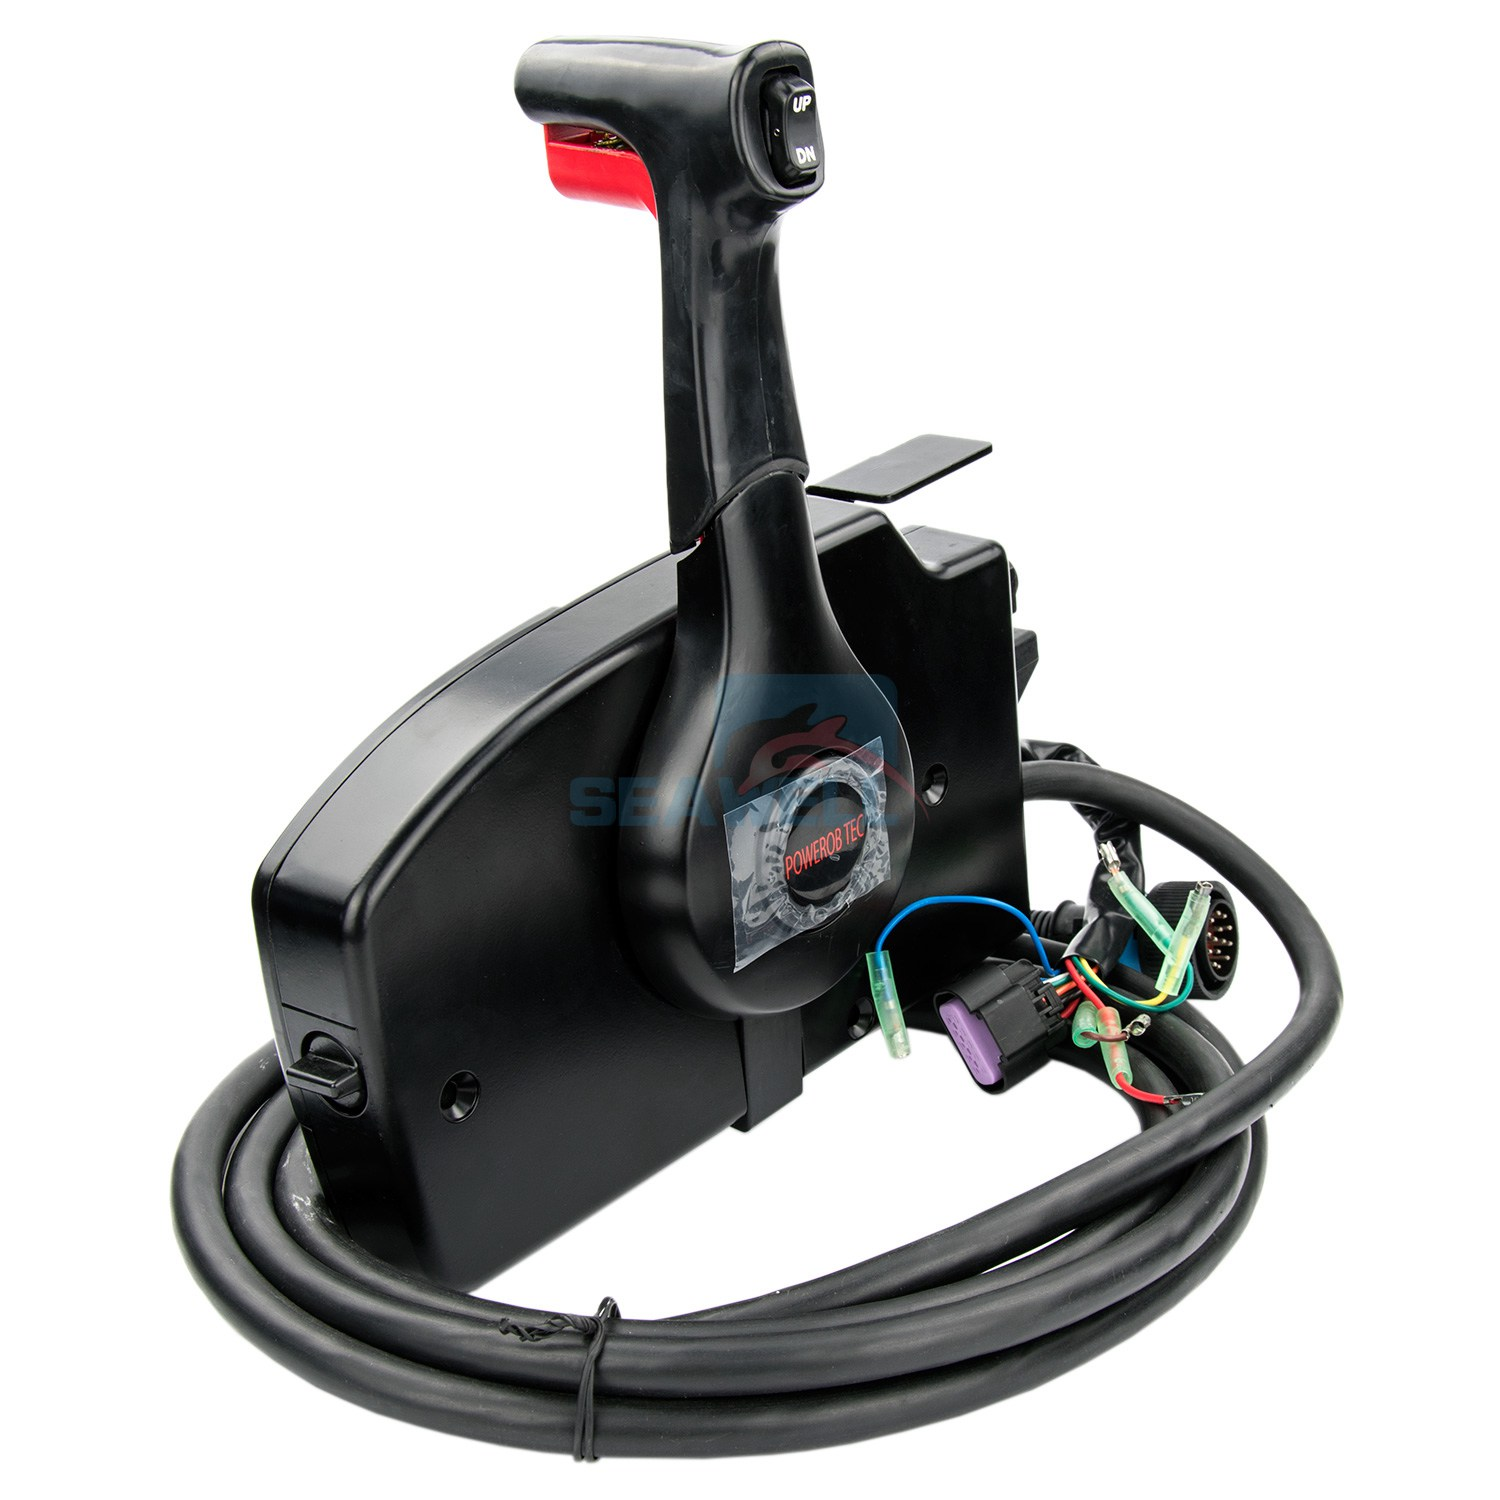 marine outboard remote control box for mercury boat engine with 14pin cable  right hand 881170a13 cable